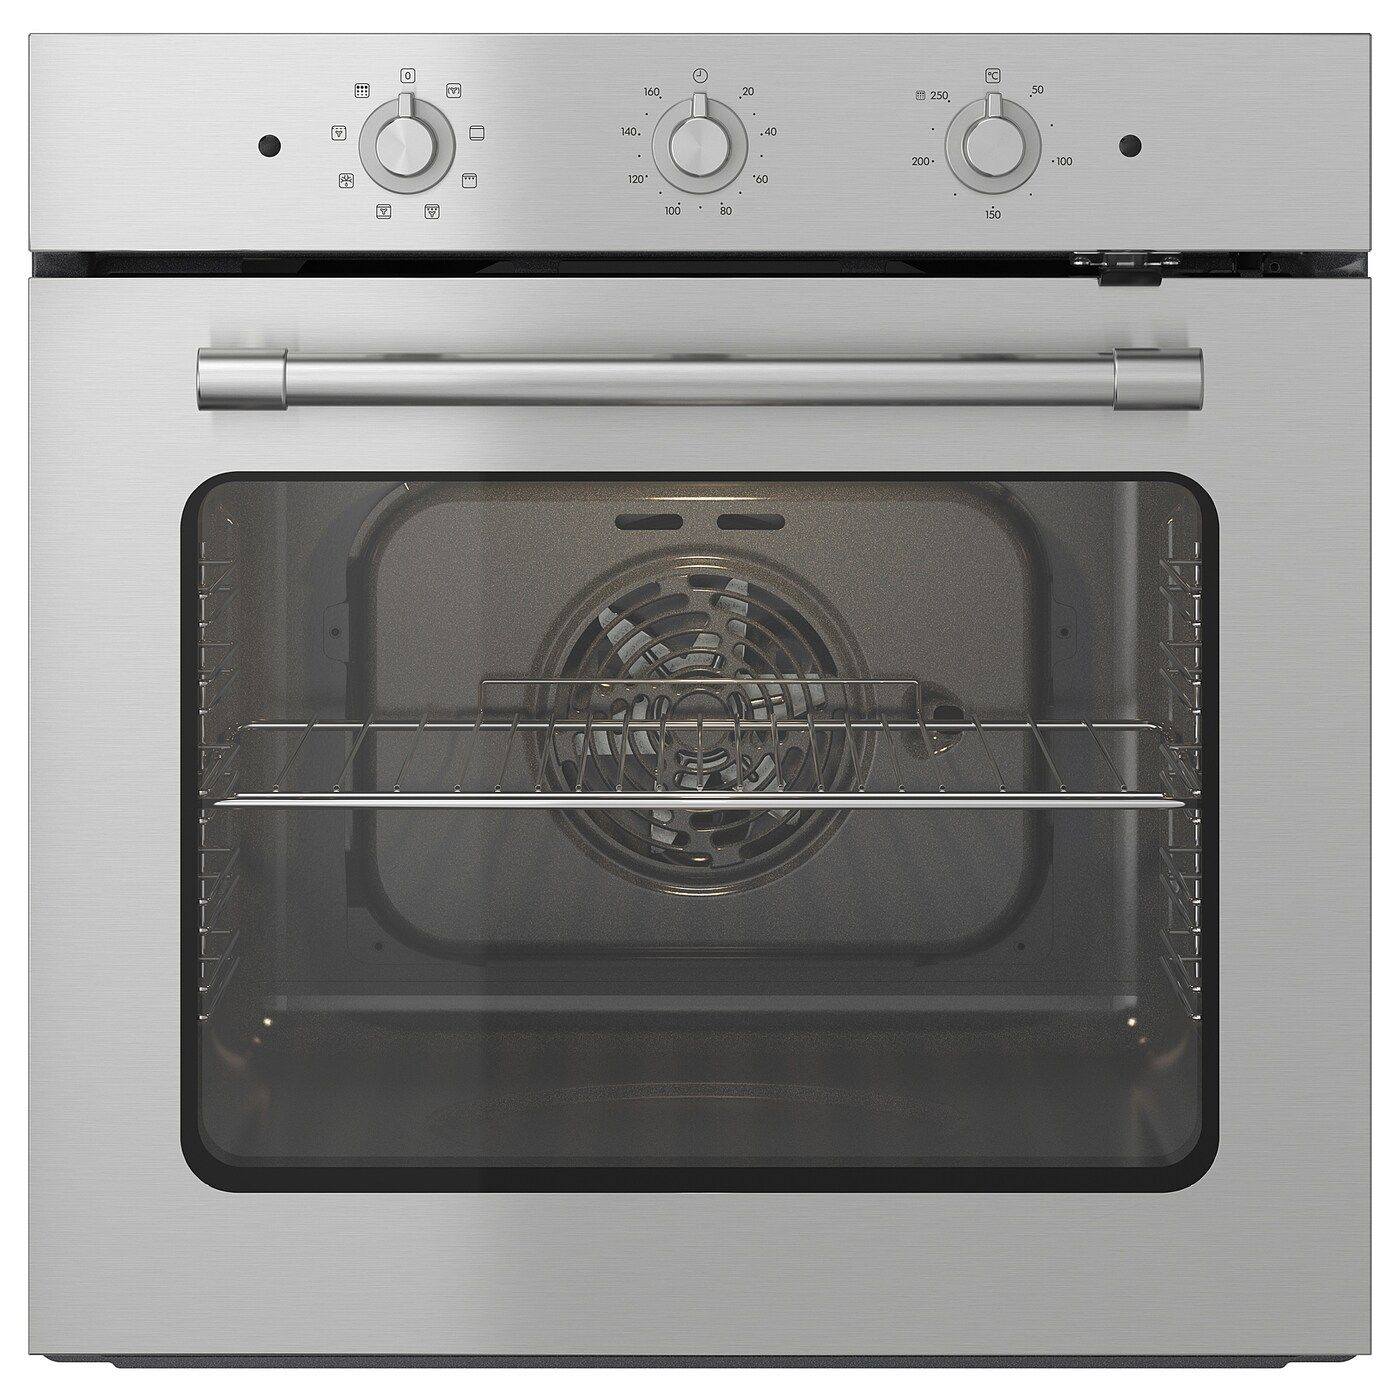 Photo of MATTRADITION Pyrolysis oven